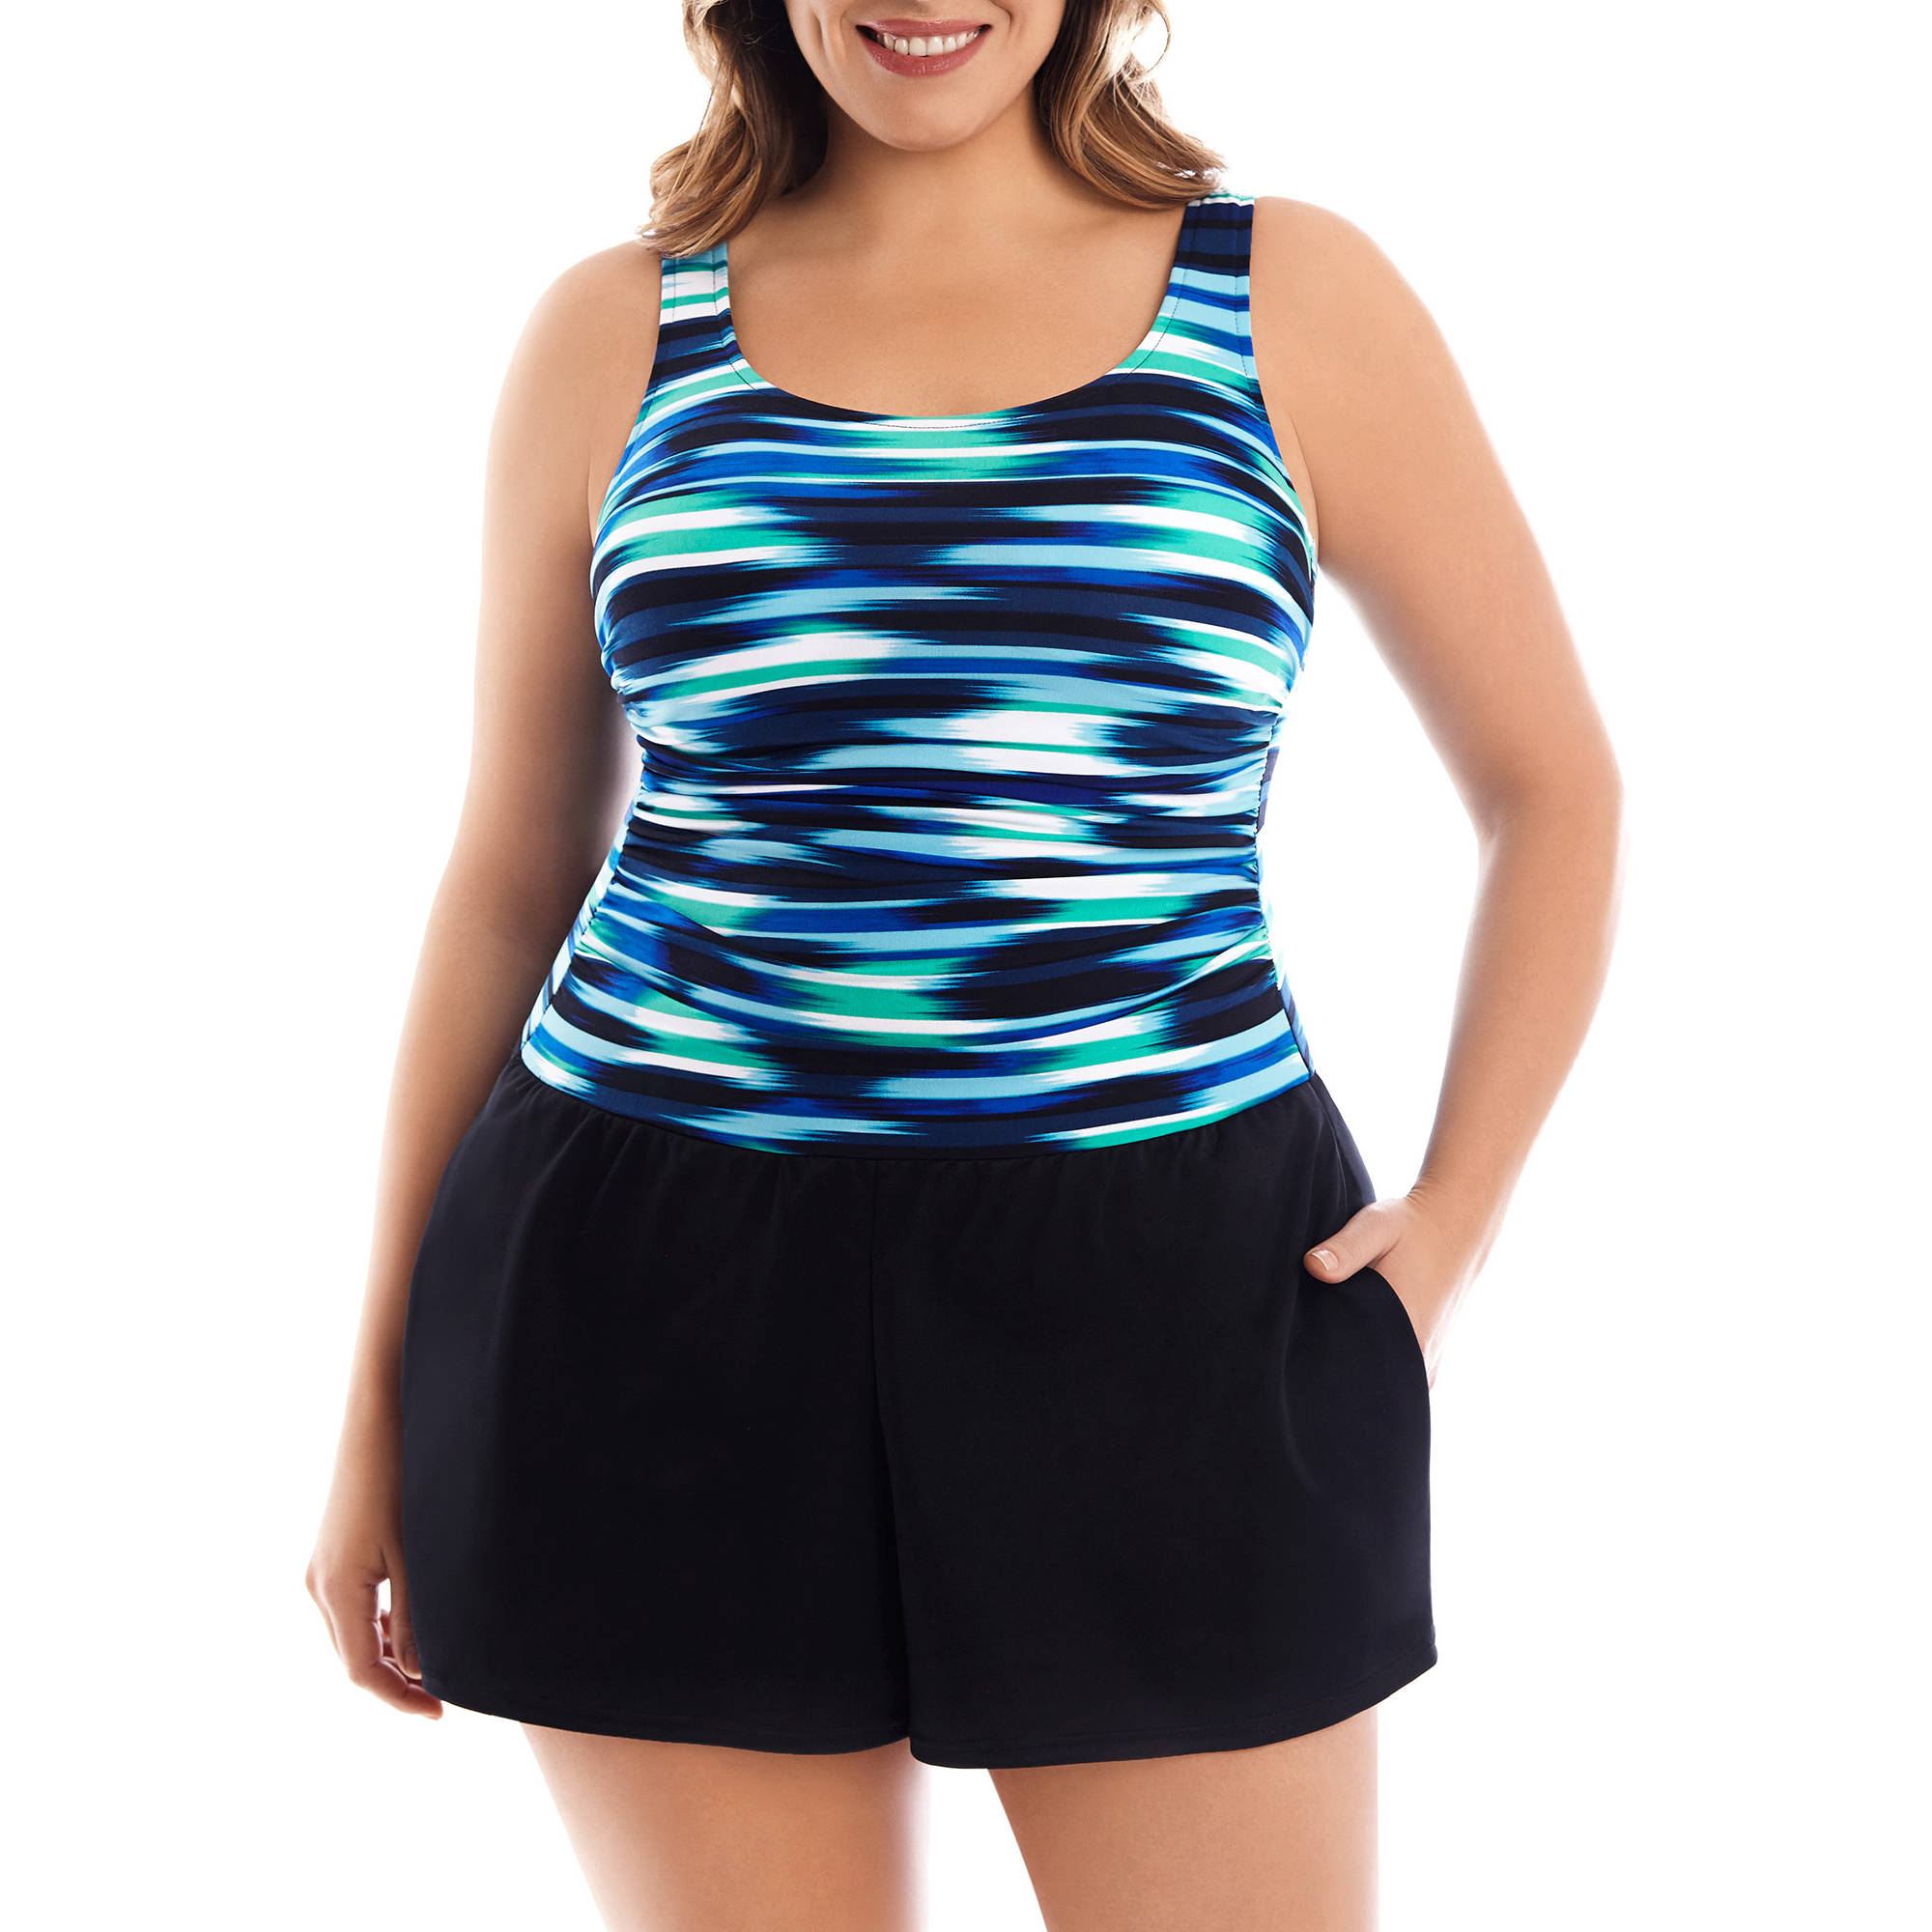 Suddenly Slim by Catalina Women's Plus-Size Slimming Full-Coverage One-Piece Swimsuit With Built-In Swimshorts